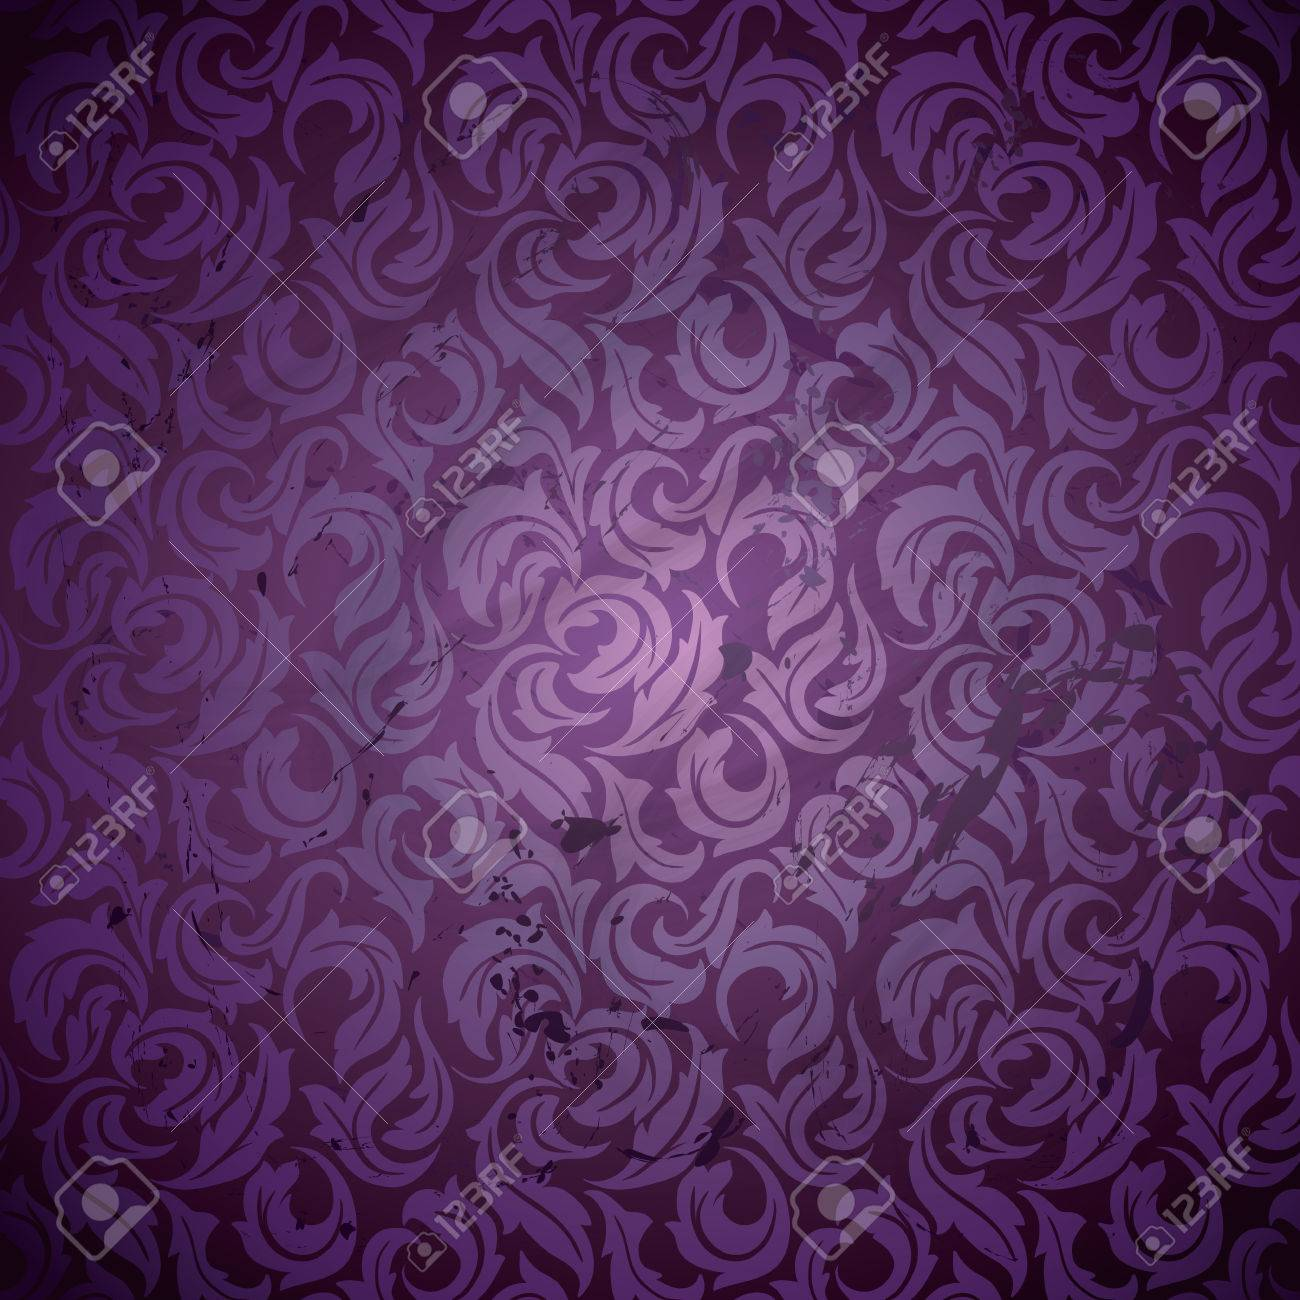 Luxury Abstract Floral Wallpaper Grunge Textured Design Royalty